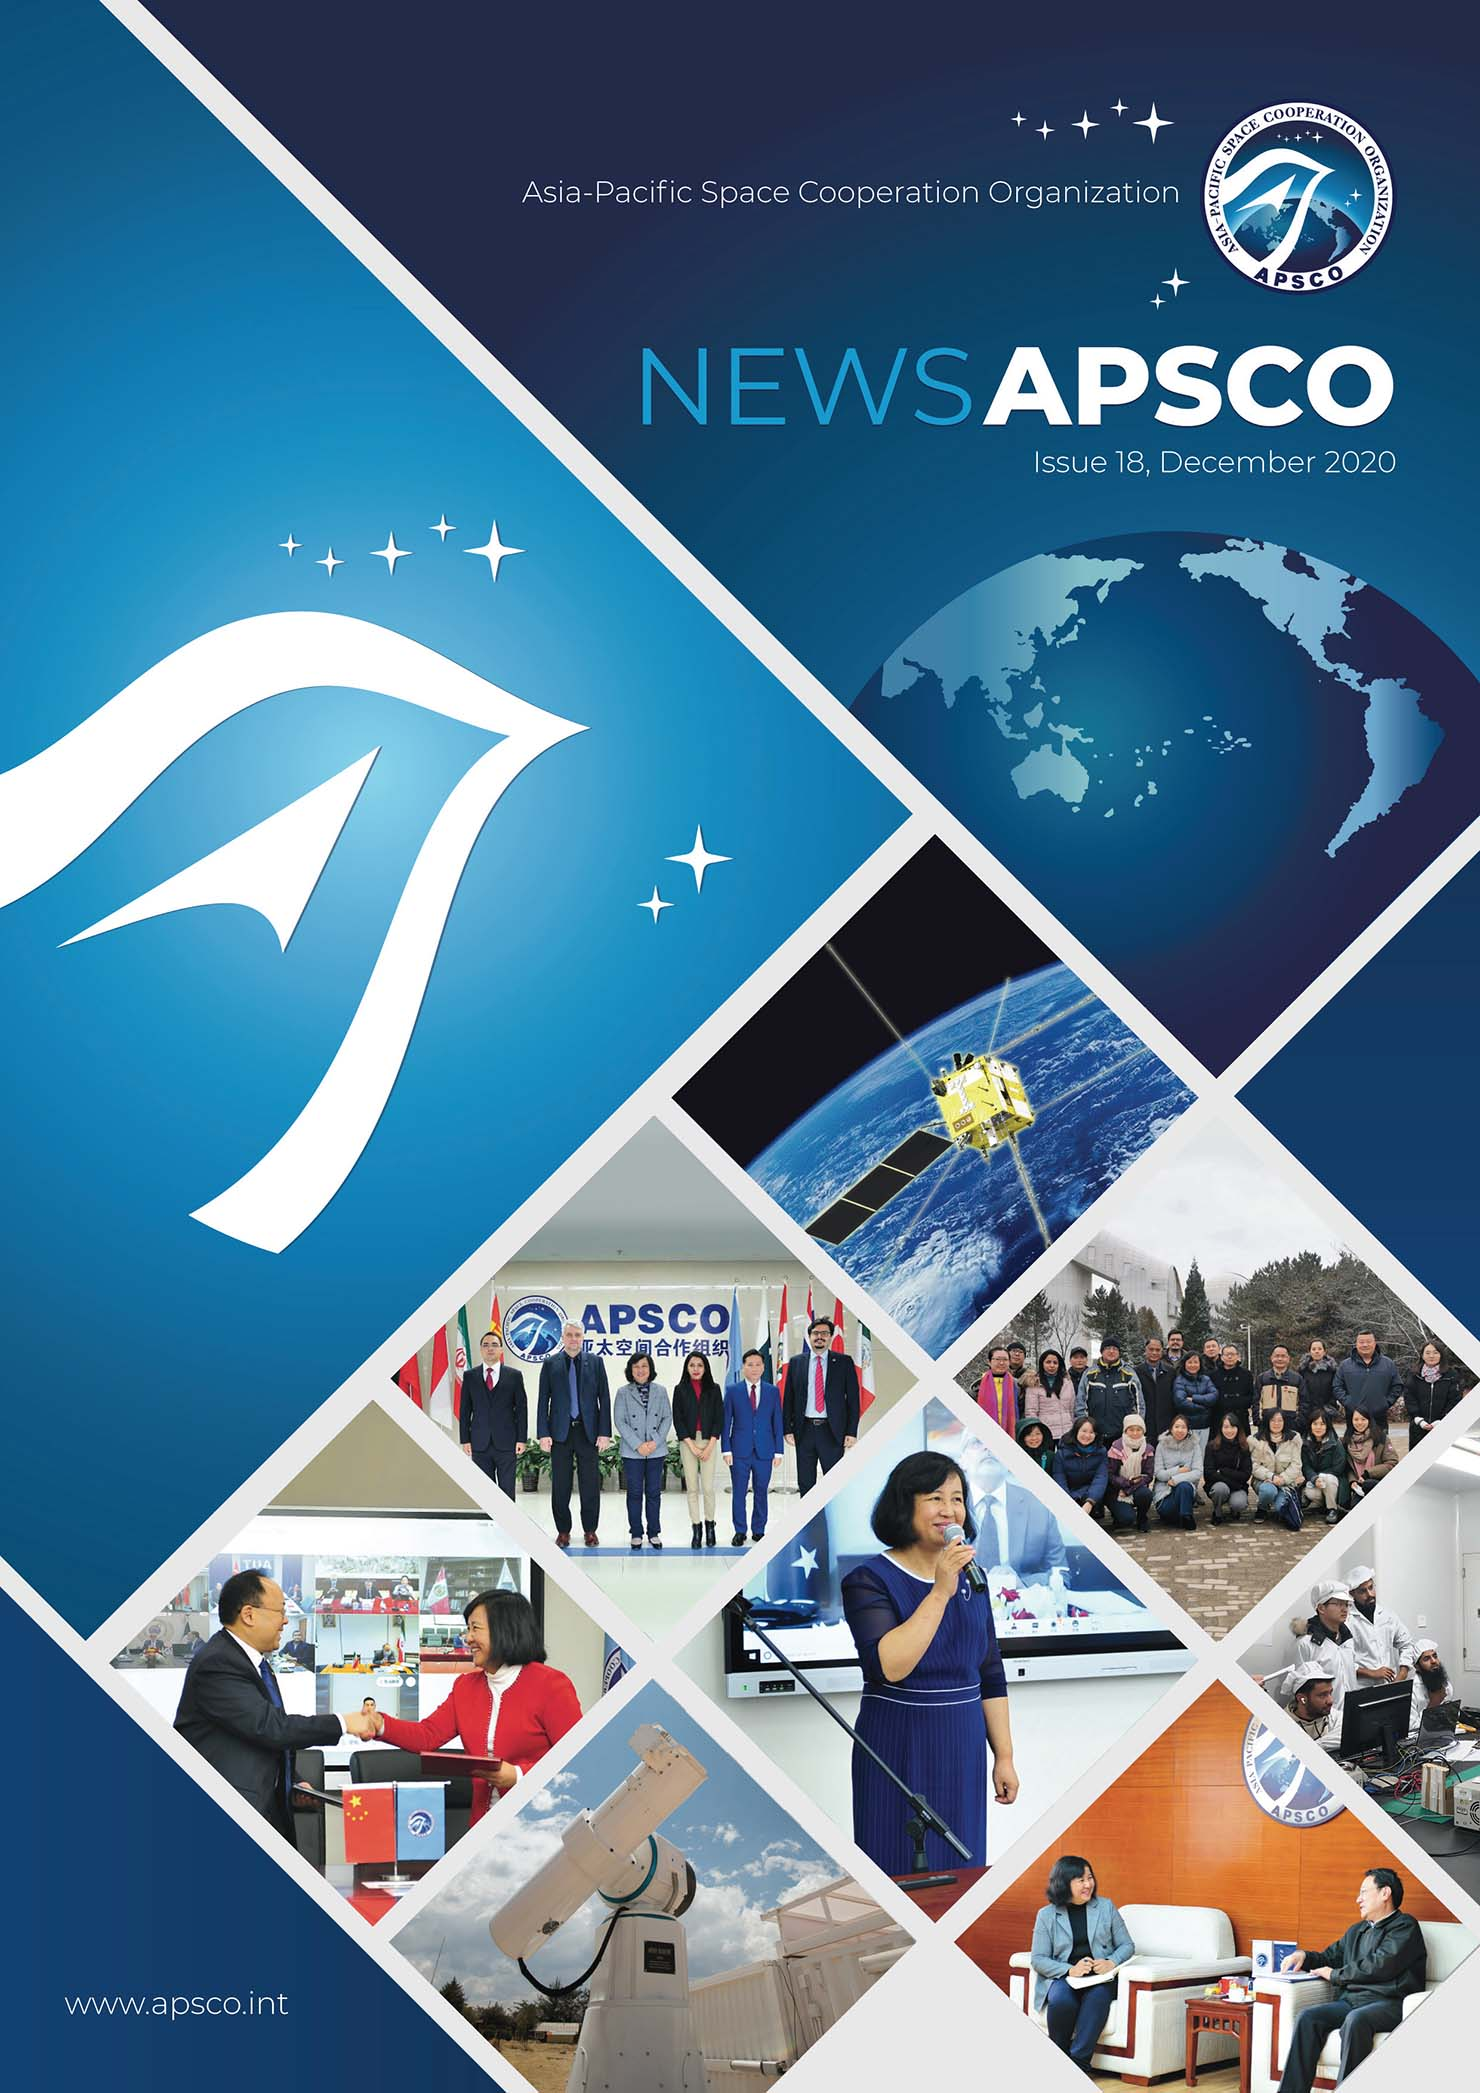 NewsAPSCO Vol.18 for year 2020 is available now